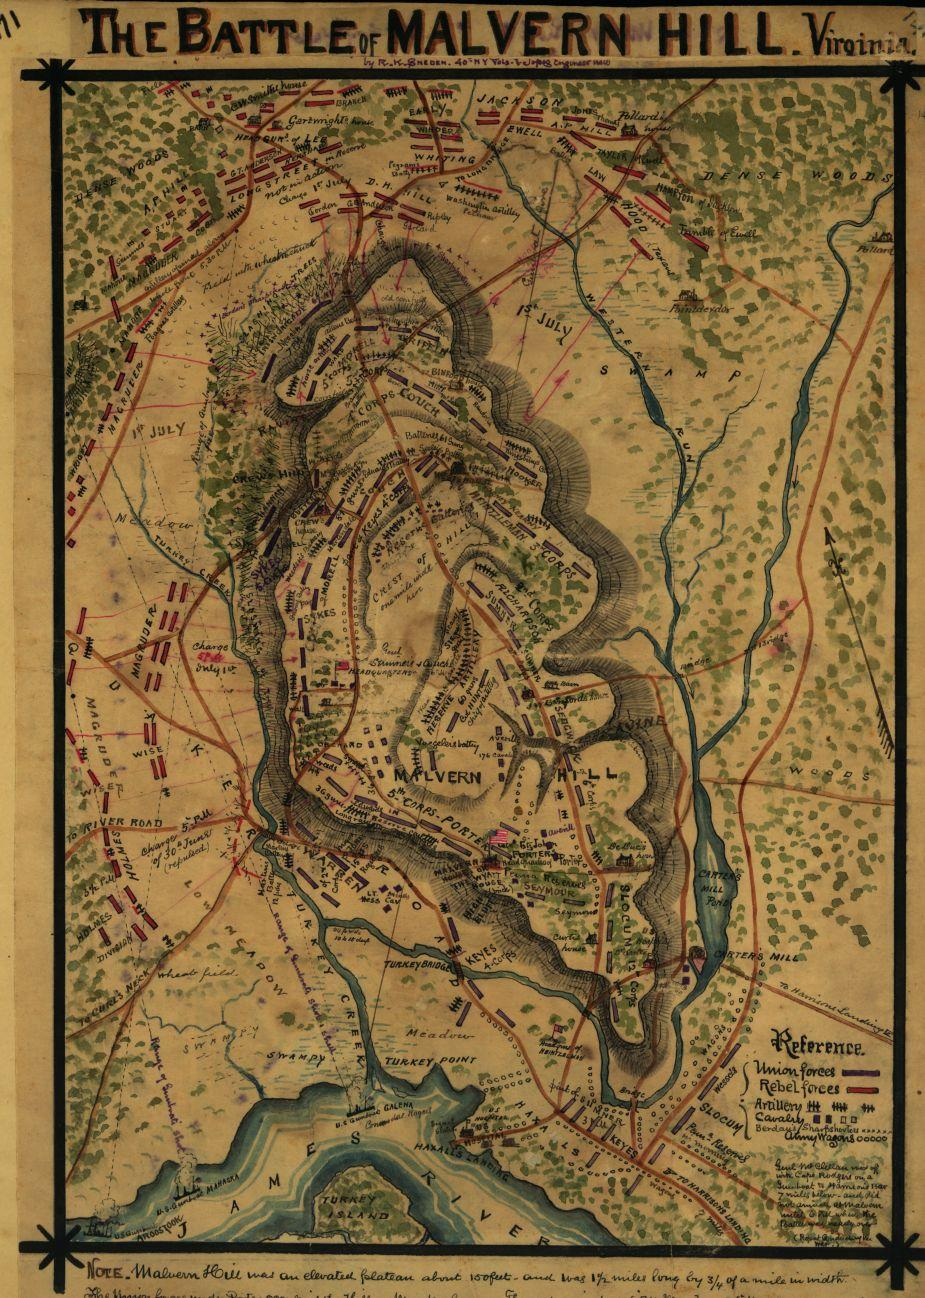 Plan of the battle of Malvern Hill, Virginia. Fought June 30th and July 1st, 1862.